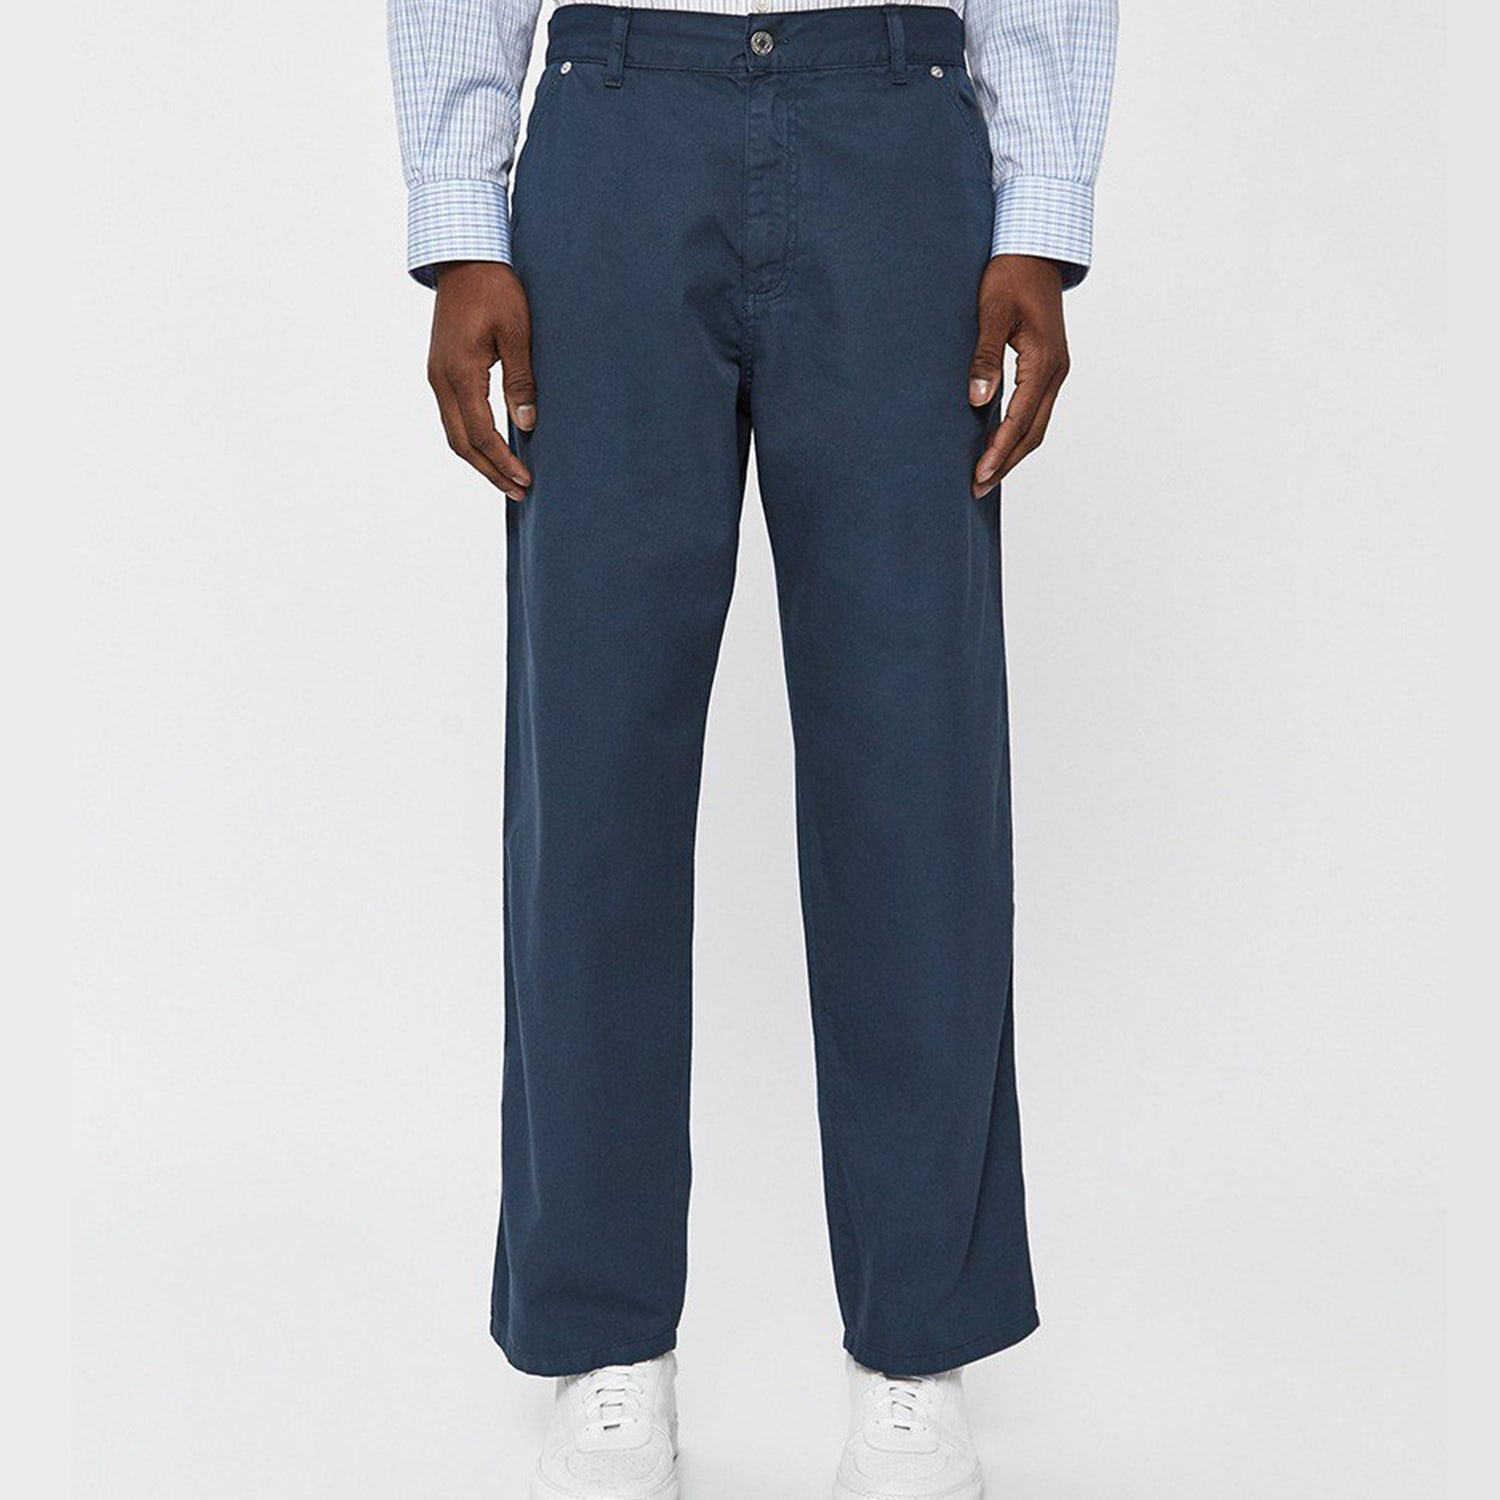 blue carpenter pants need supply